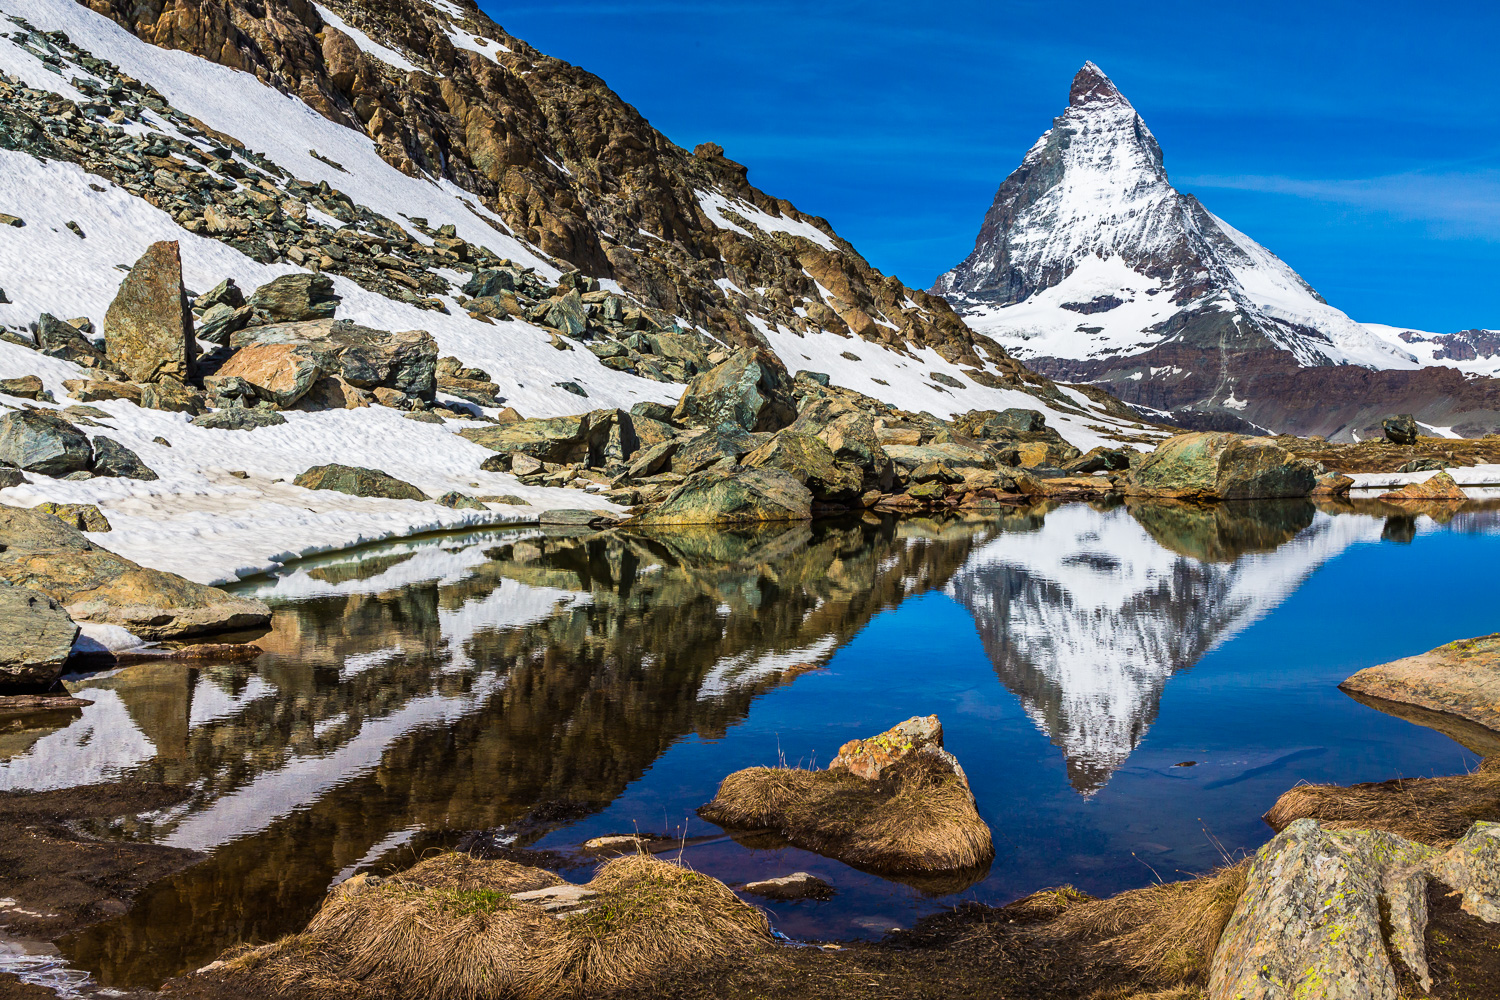 The Matterhorn reflected in a lake near Riffelsee, Zermatt, Switzerland